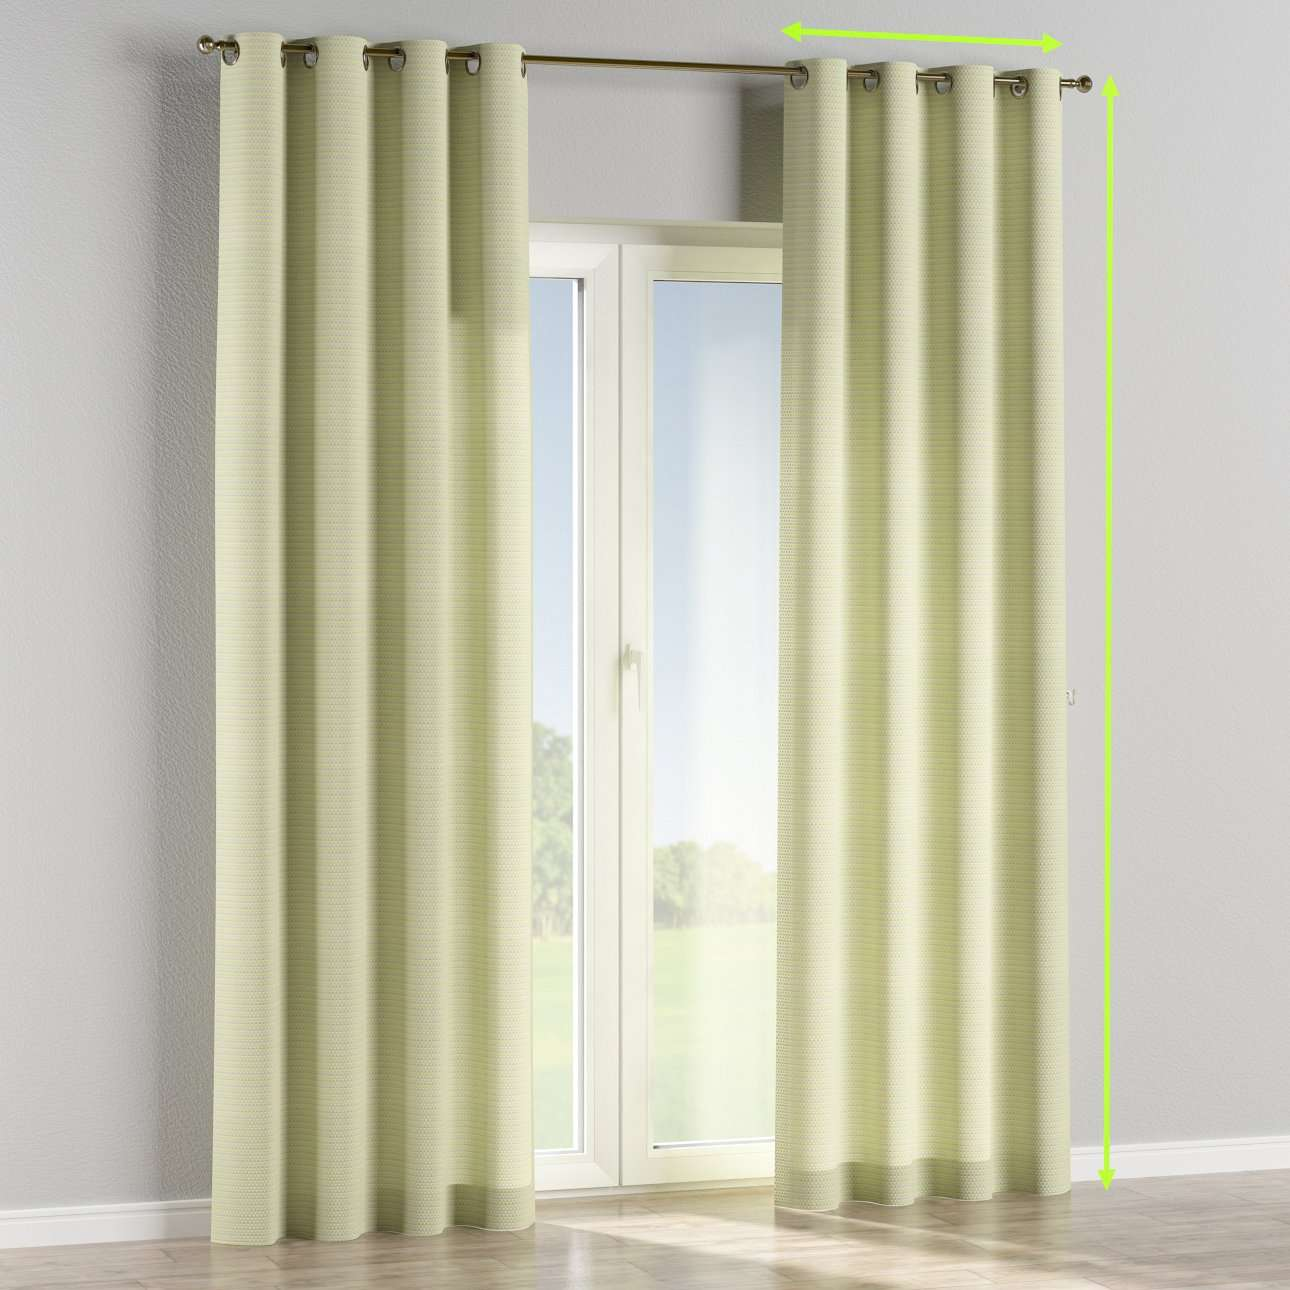 Eyelet curtains in collection Rustica, fabric: 140-34